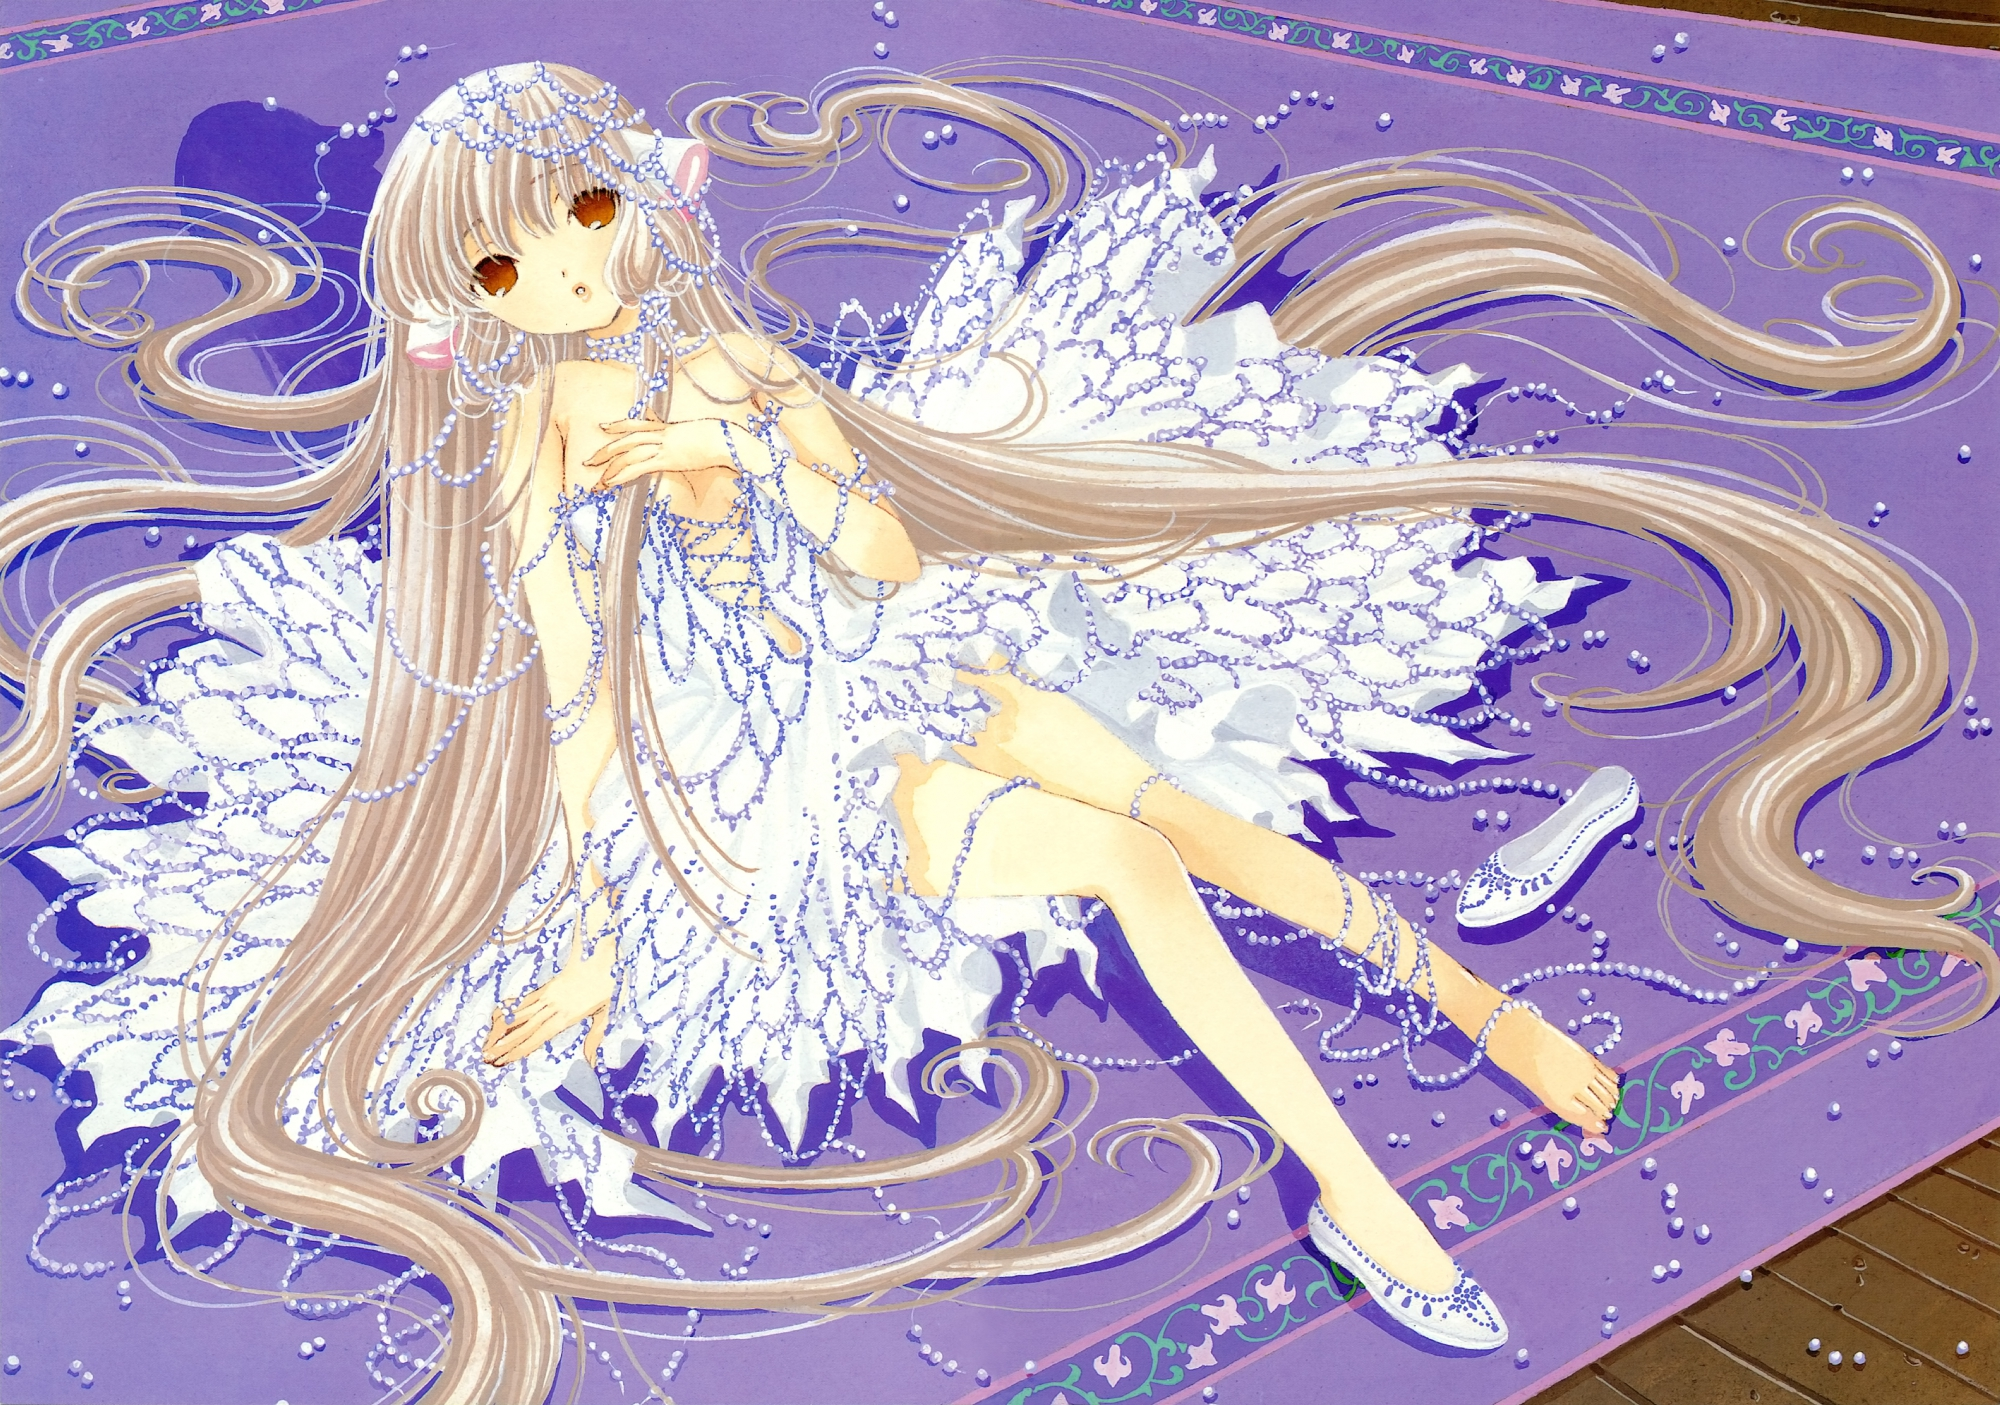 chii chobits clamp purple scan